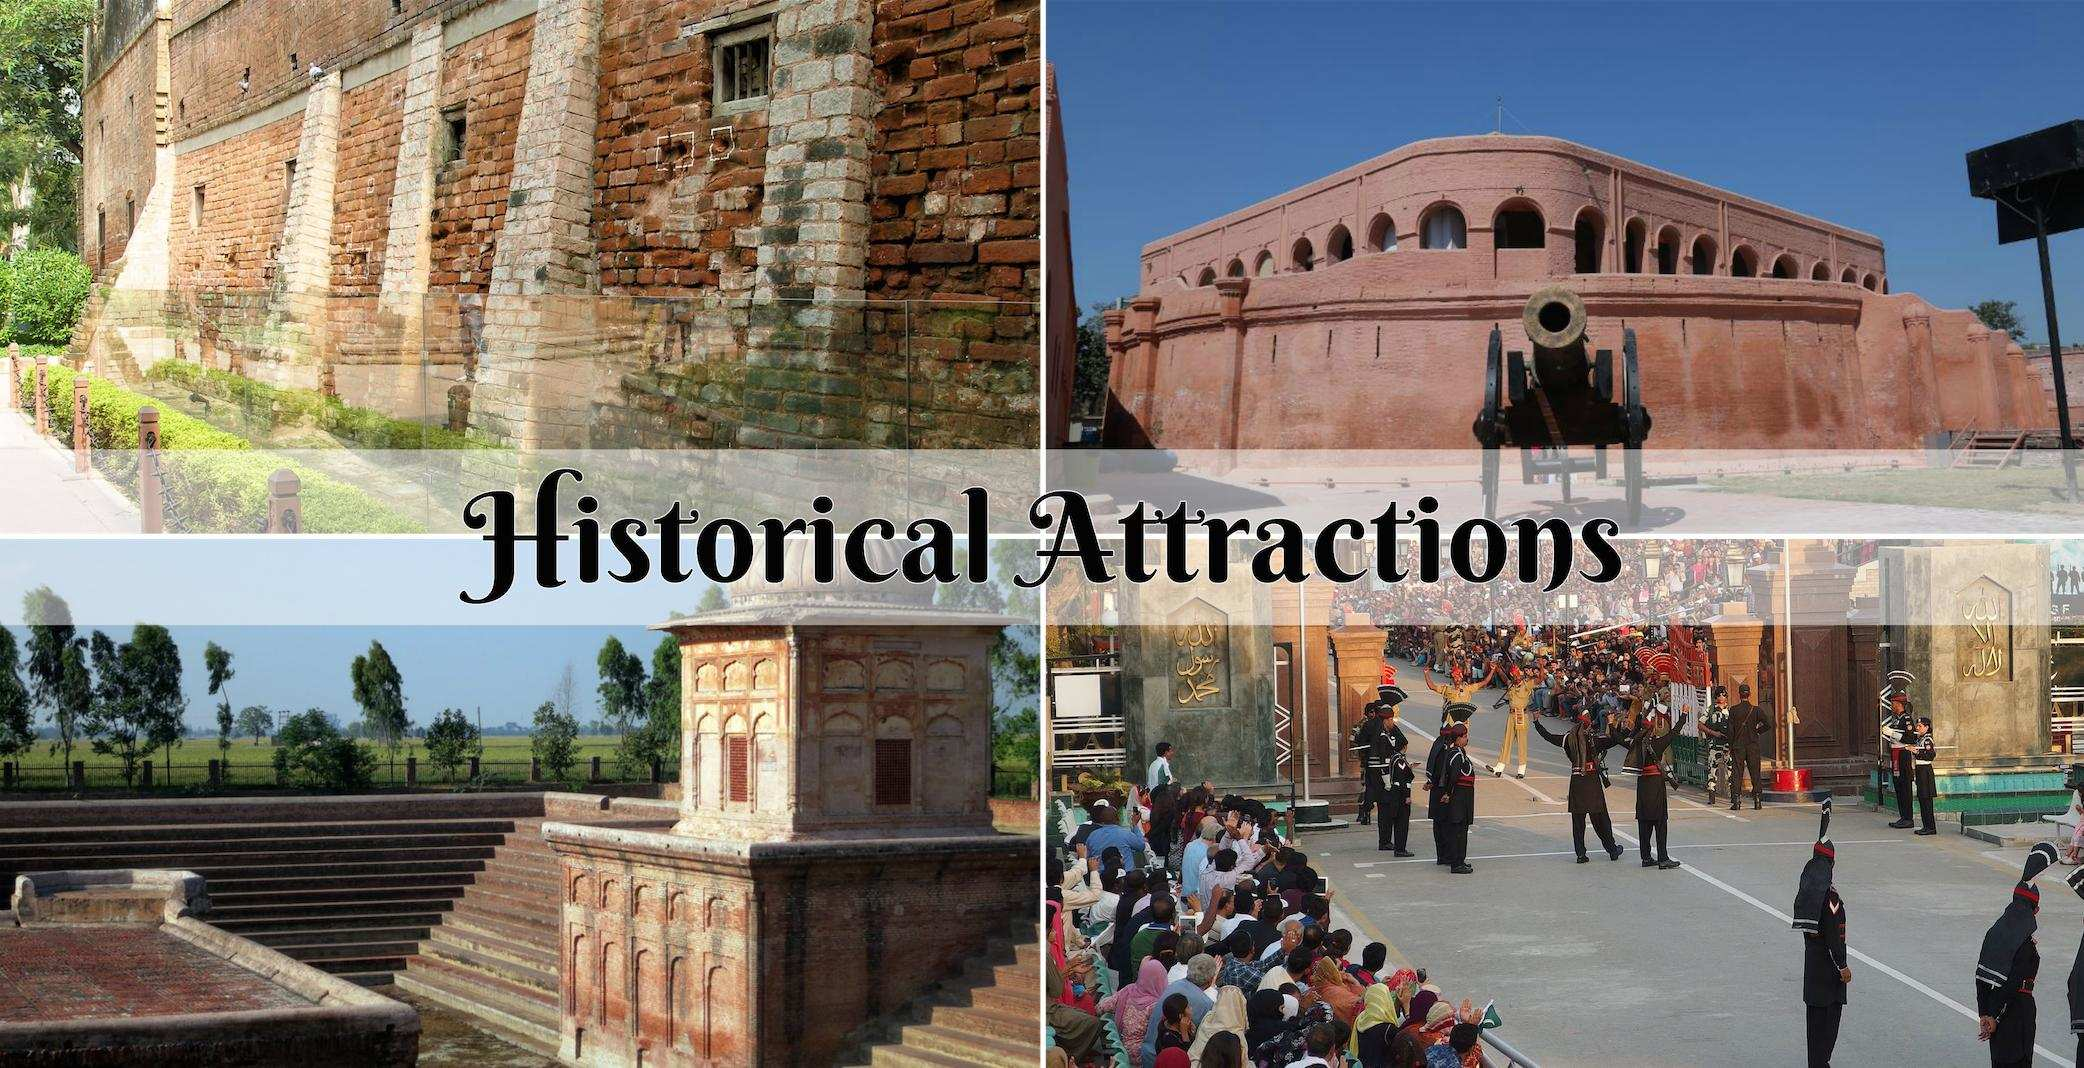 Historical attractions at Amritsar.jpg